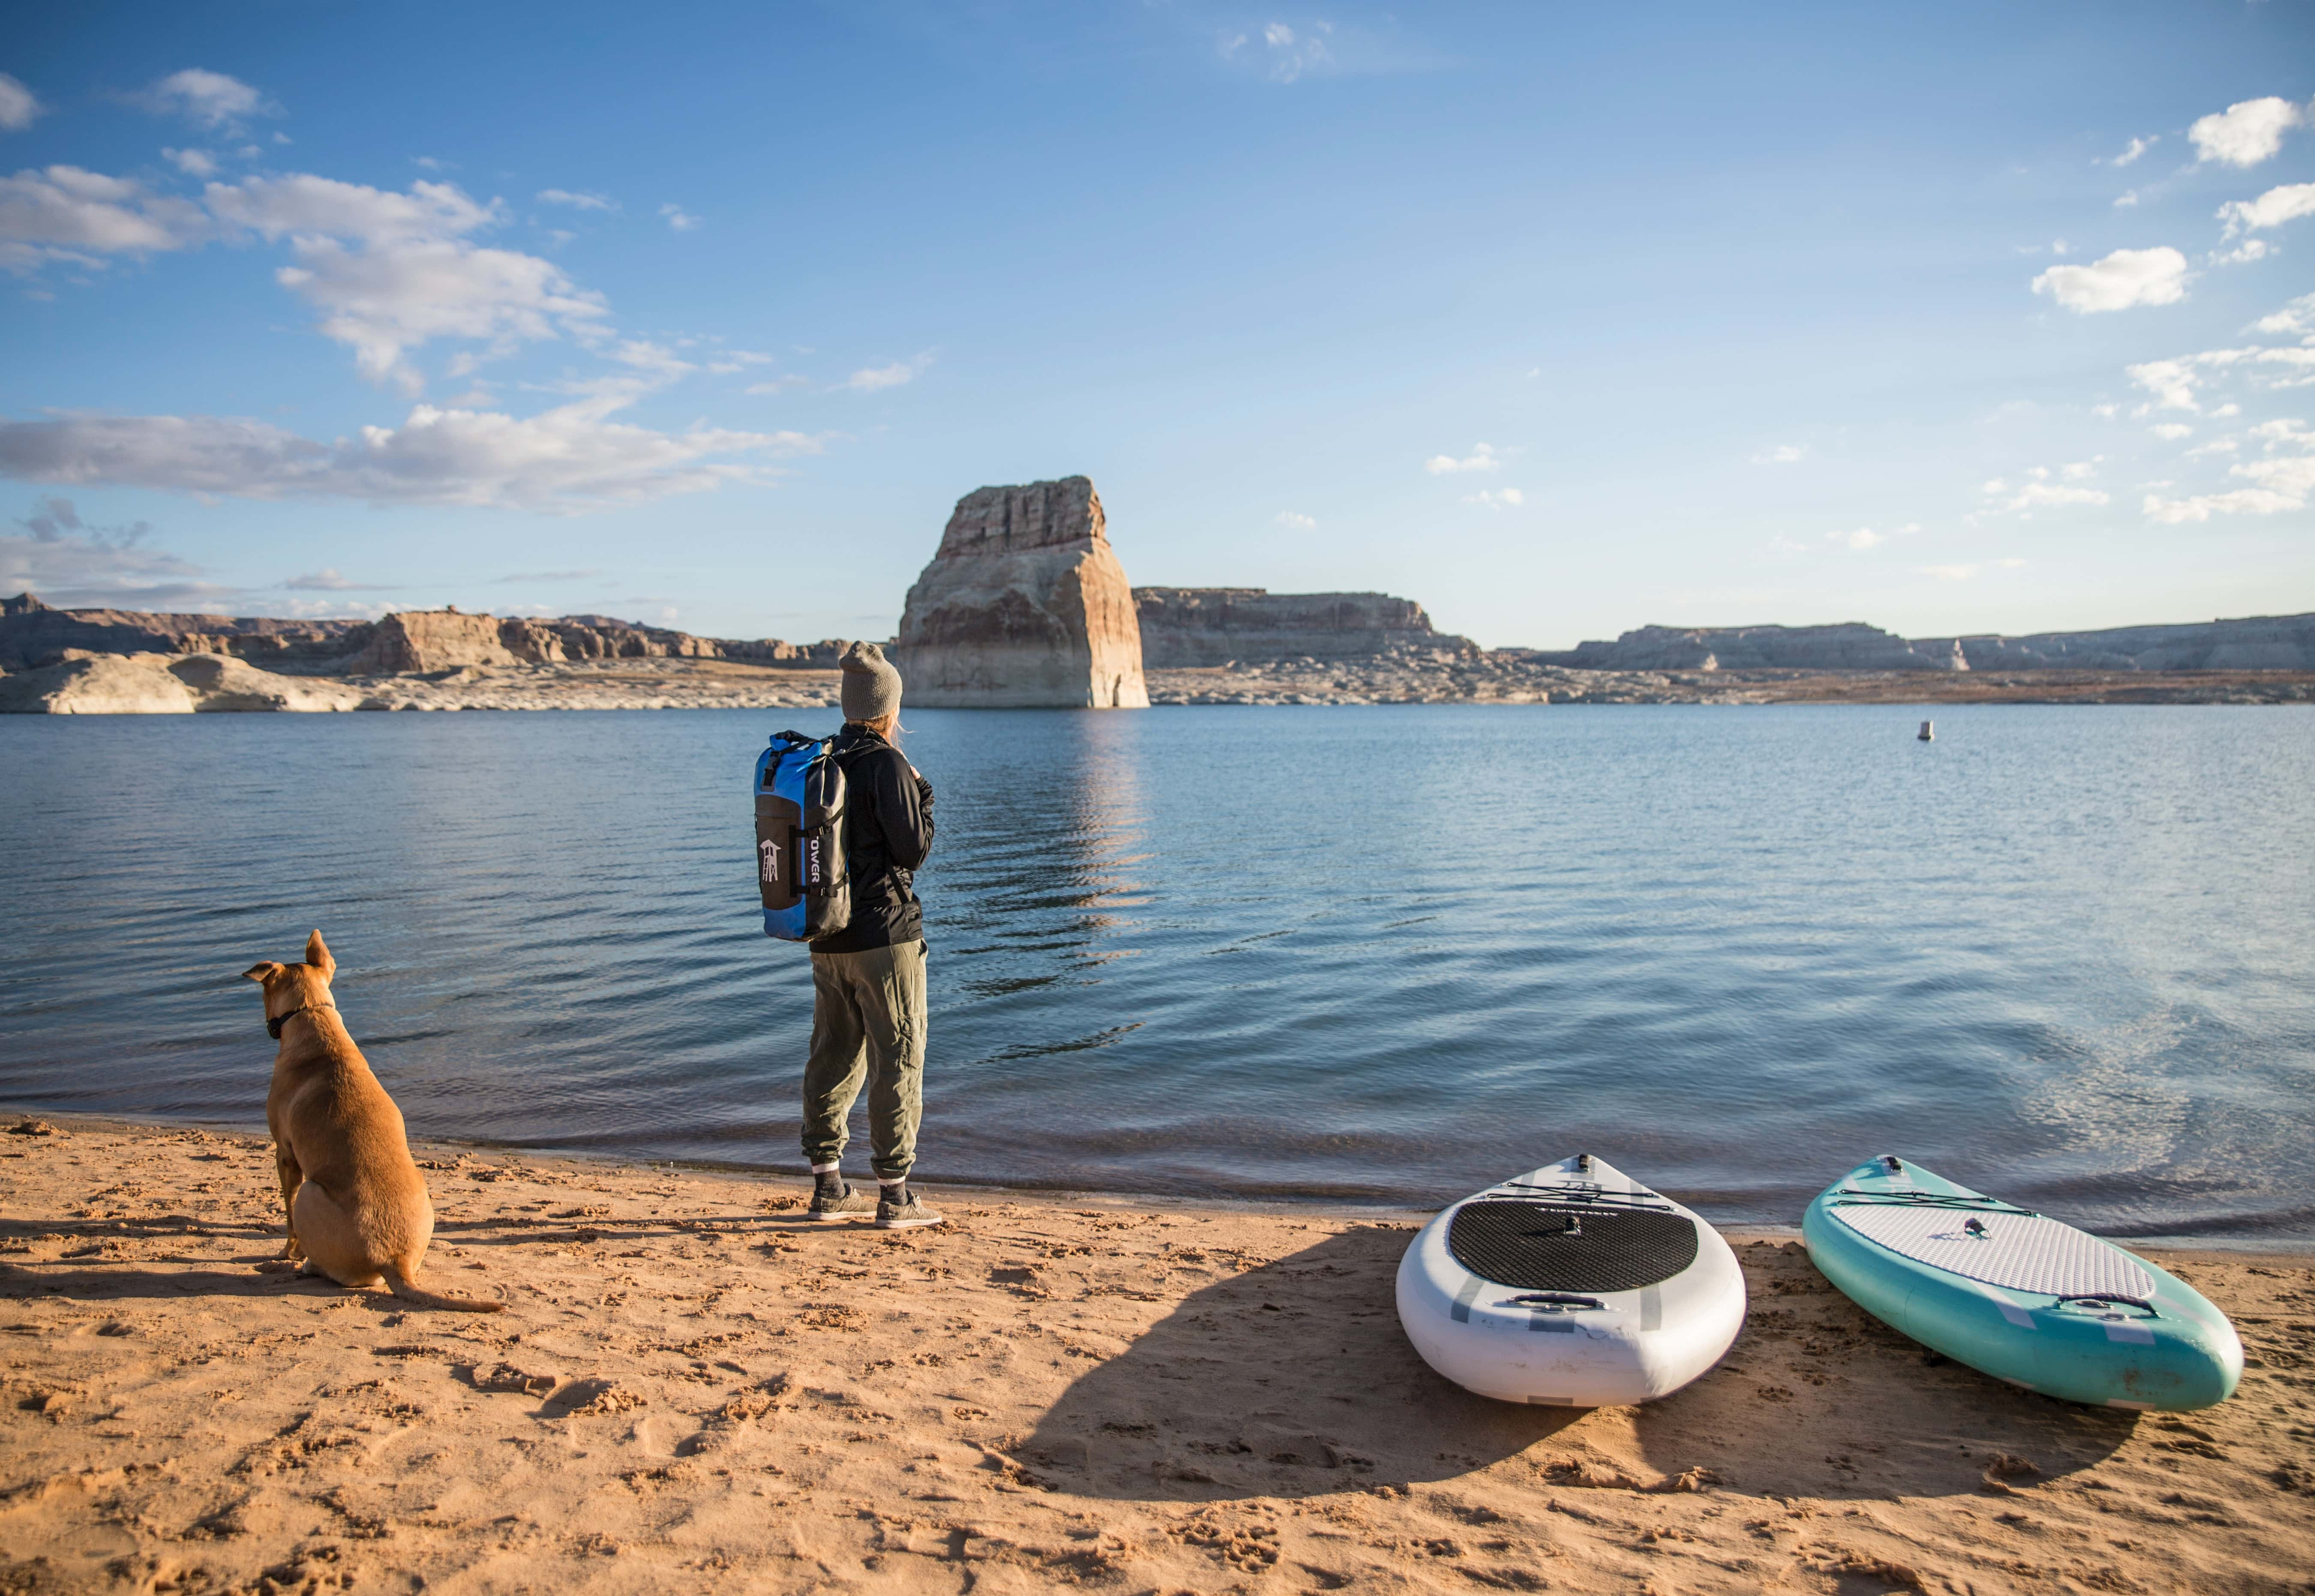 Getting your dog use to the paddle boarding being set up